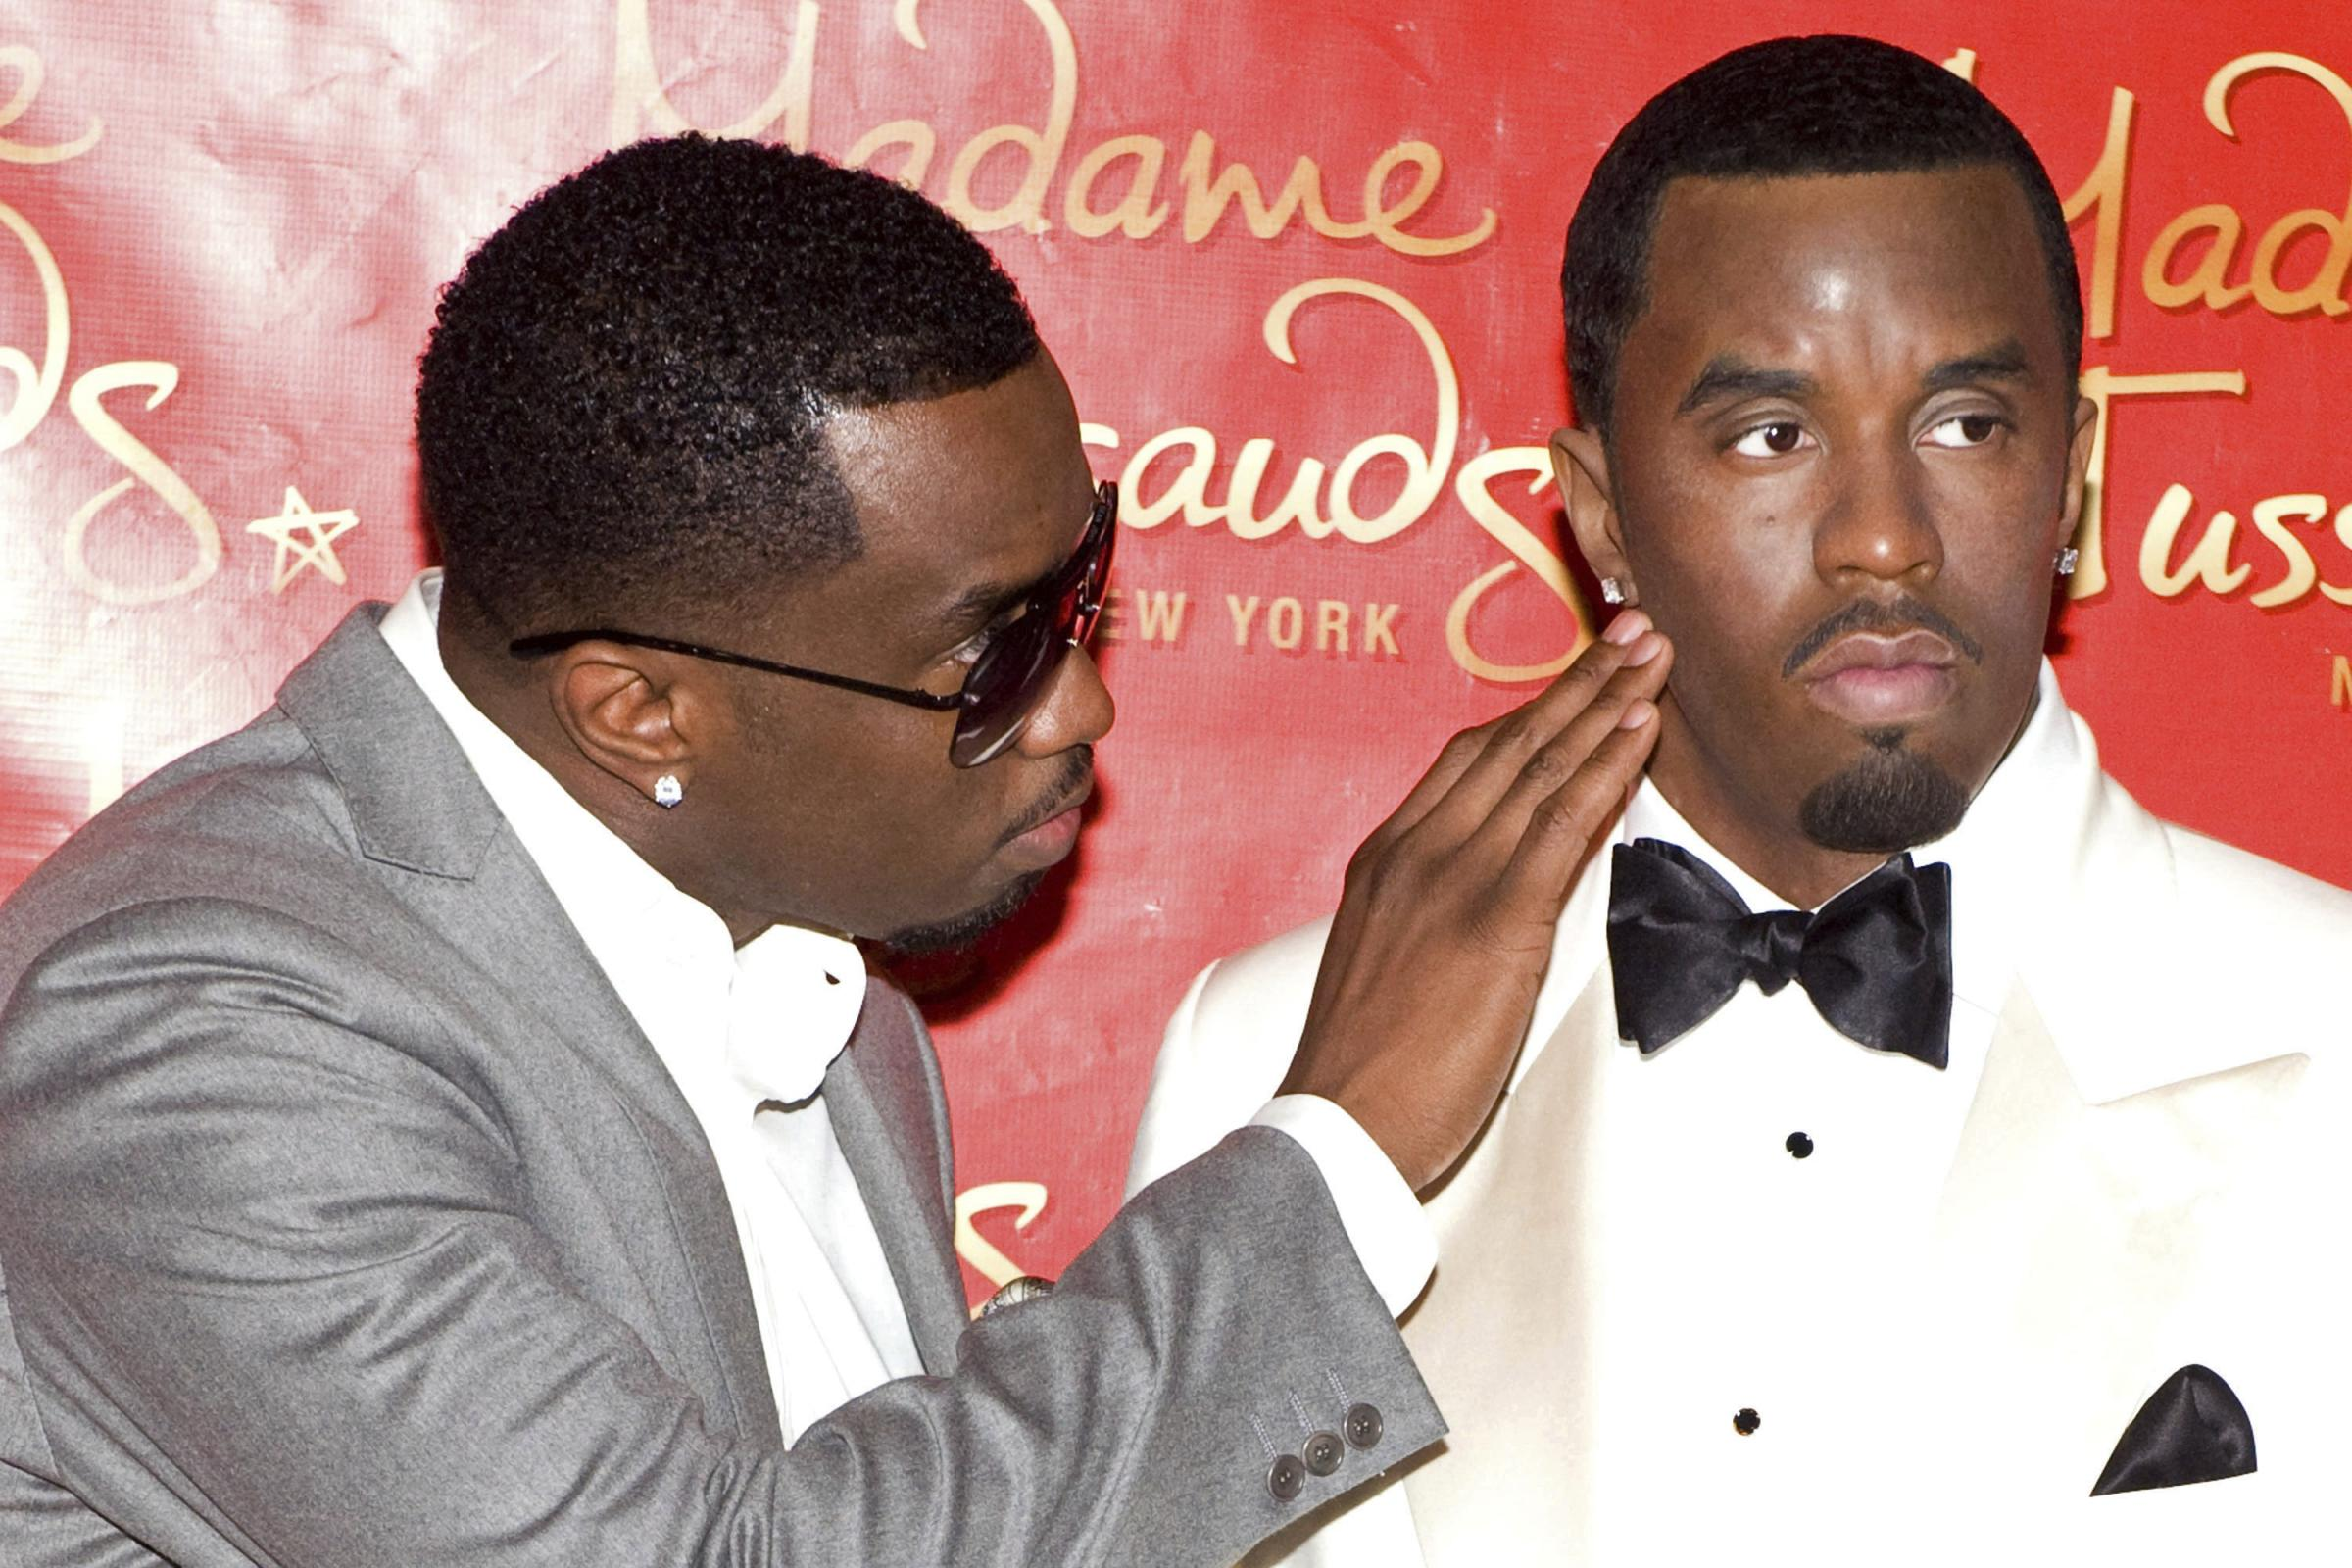 Sean 'Diddy' Combs unveiling his wax figure at Madame Tussauds in New York